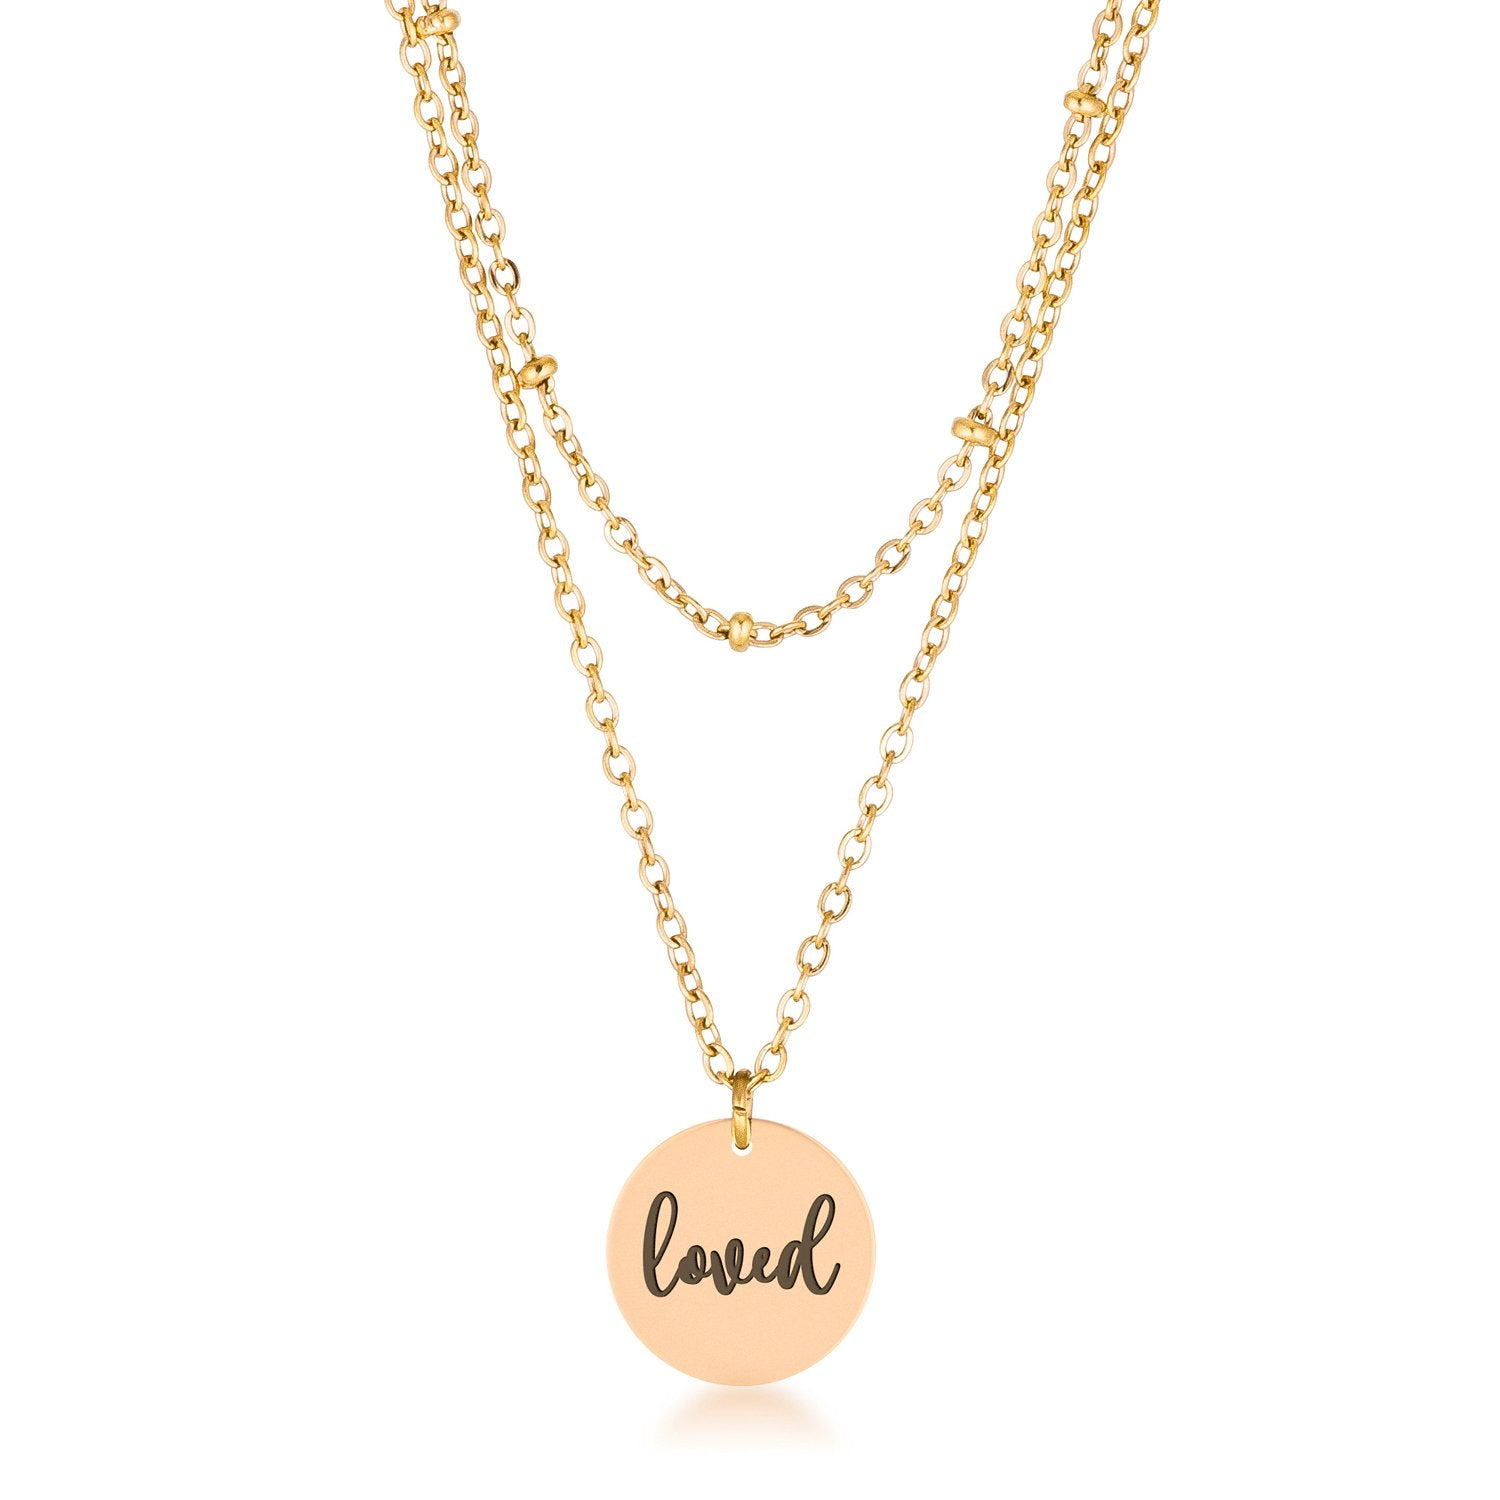 Double Chain loved Necklace-Delicate 18k Gold Plated